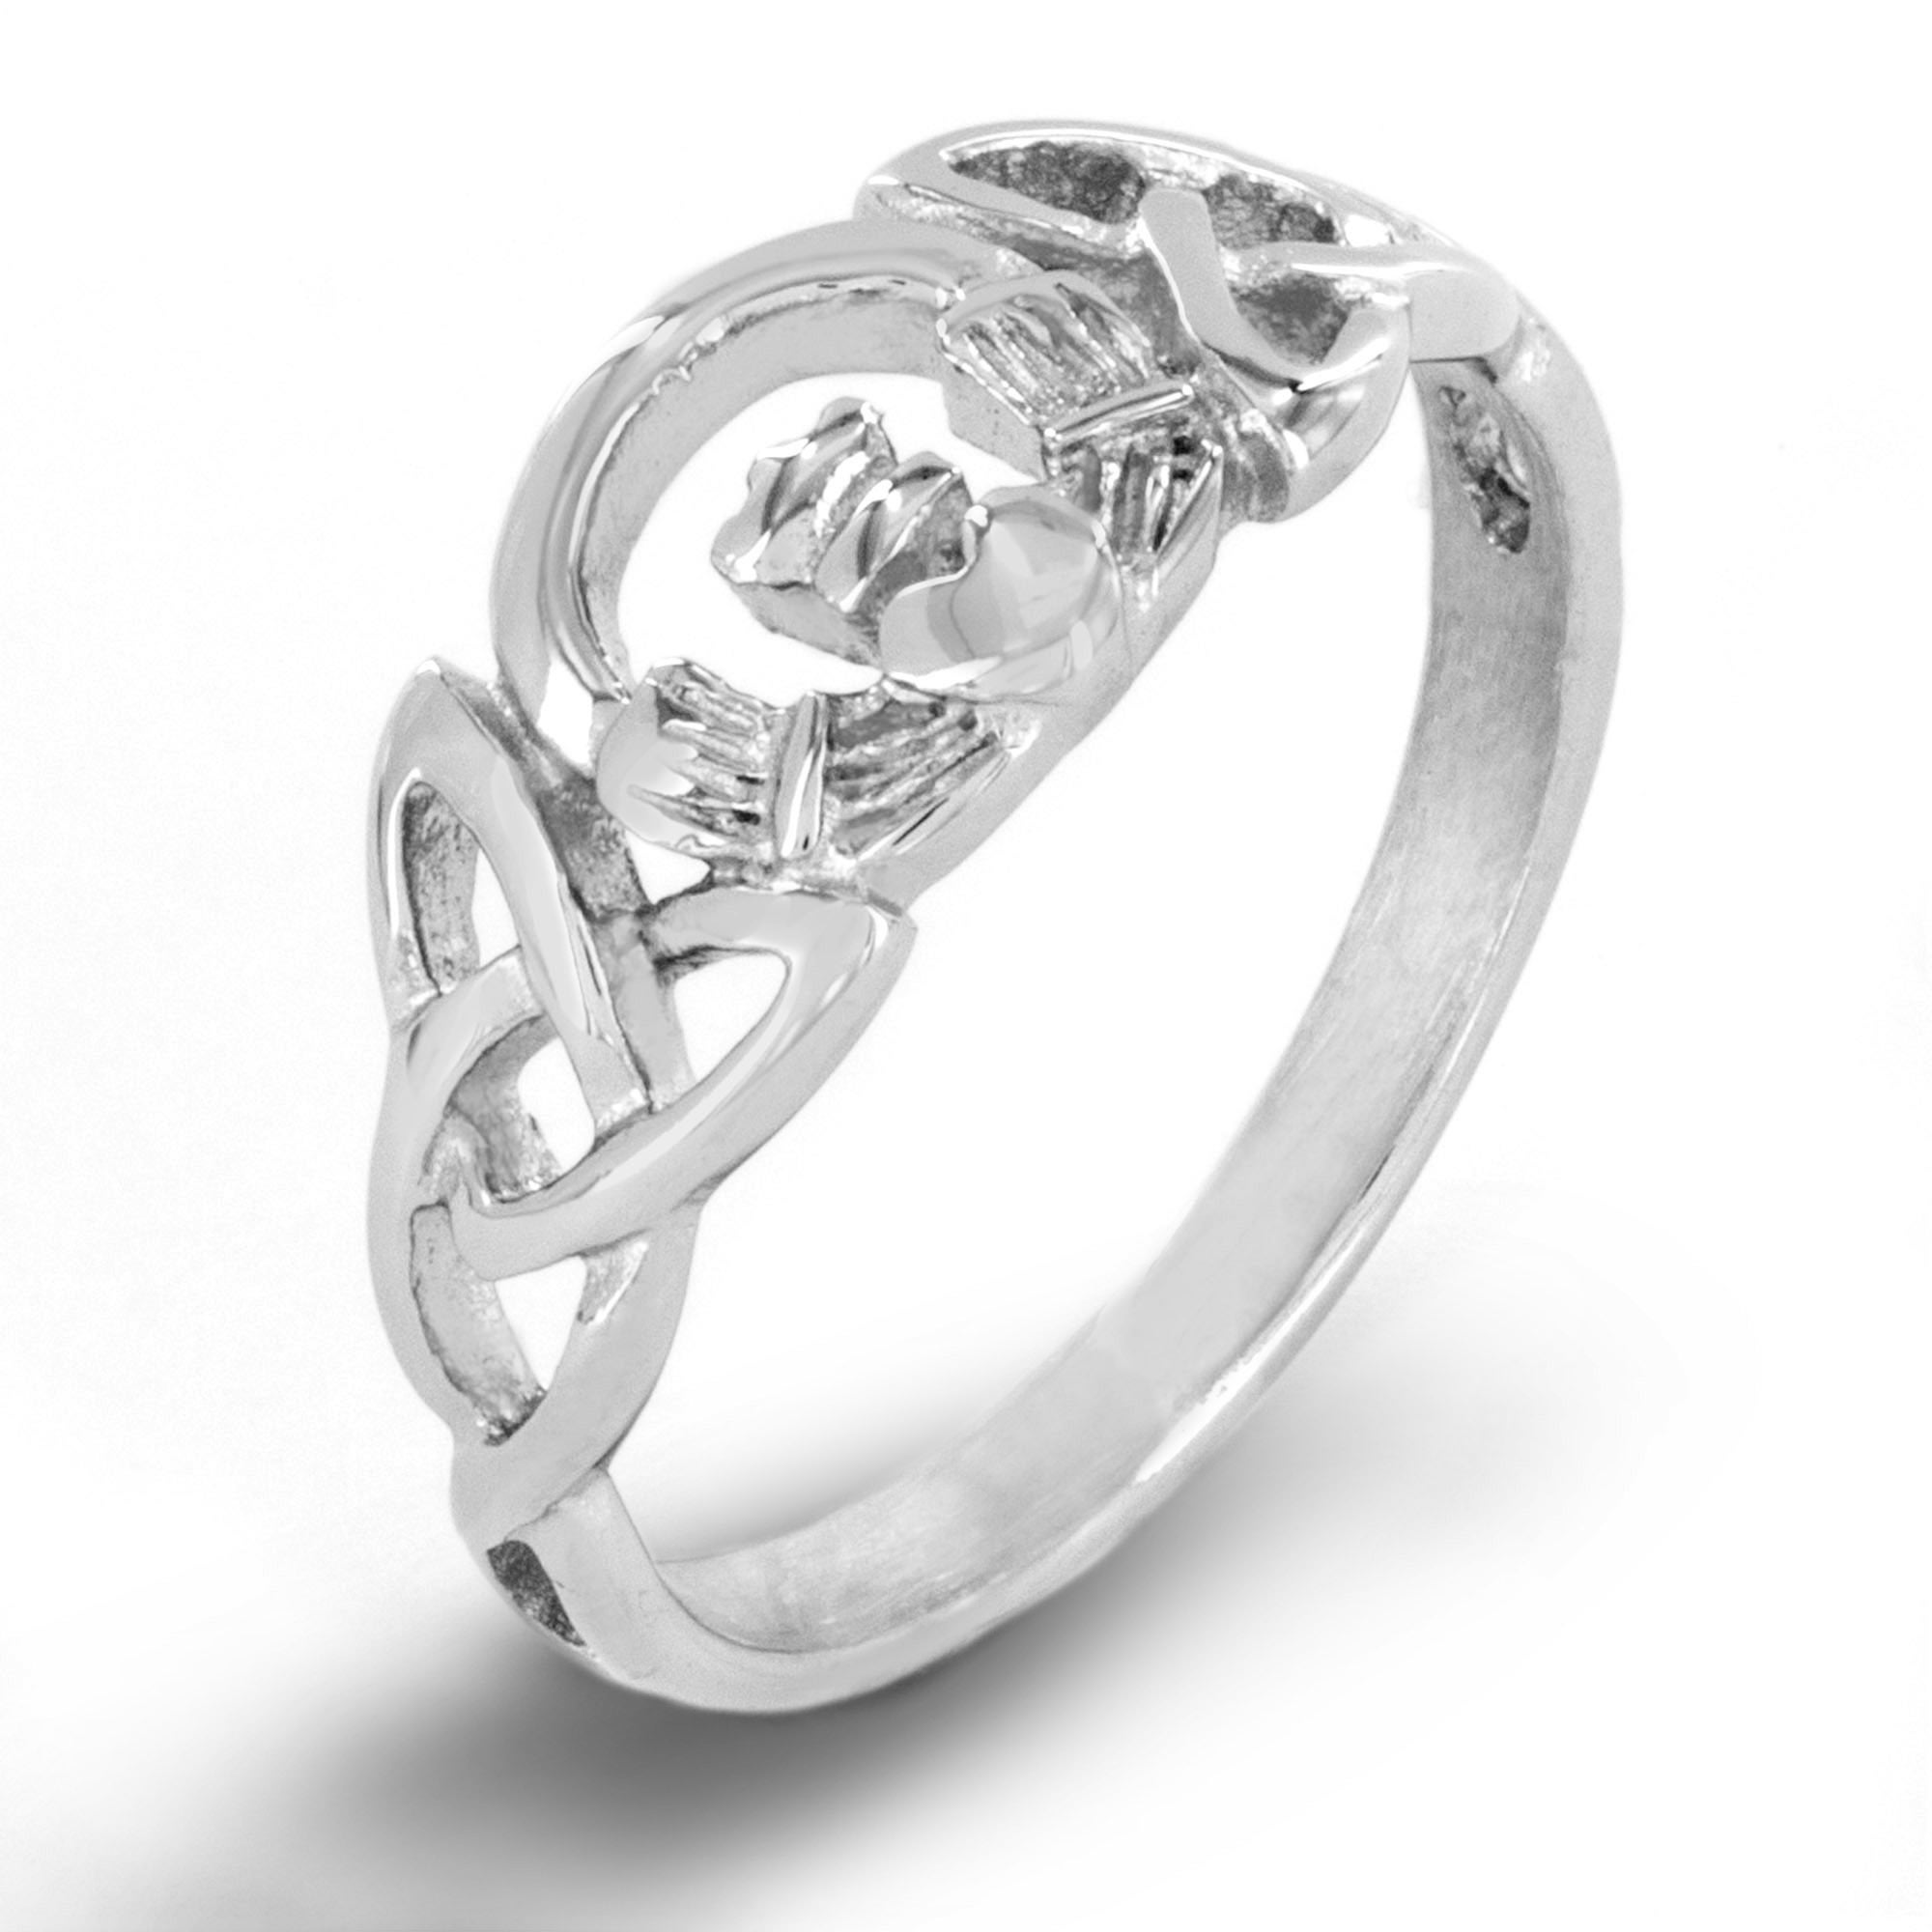 ri ring silver trinity products new celtic moon knot diamond